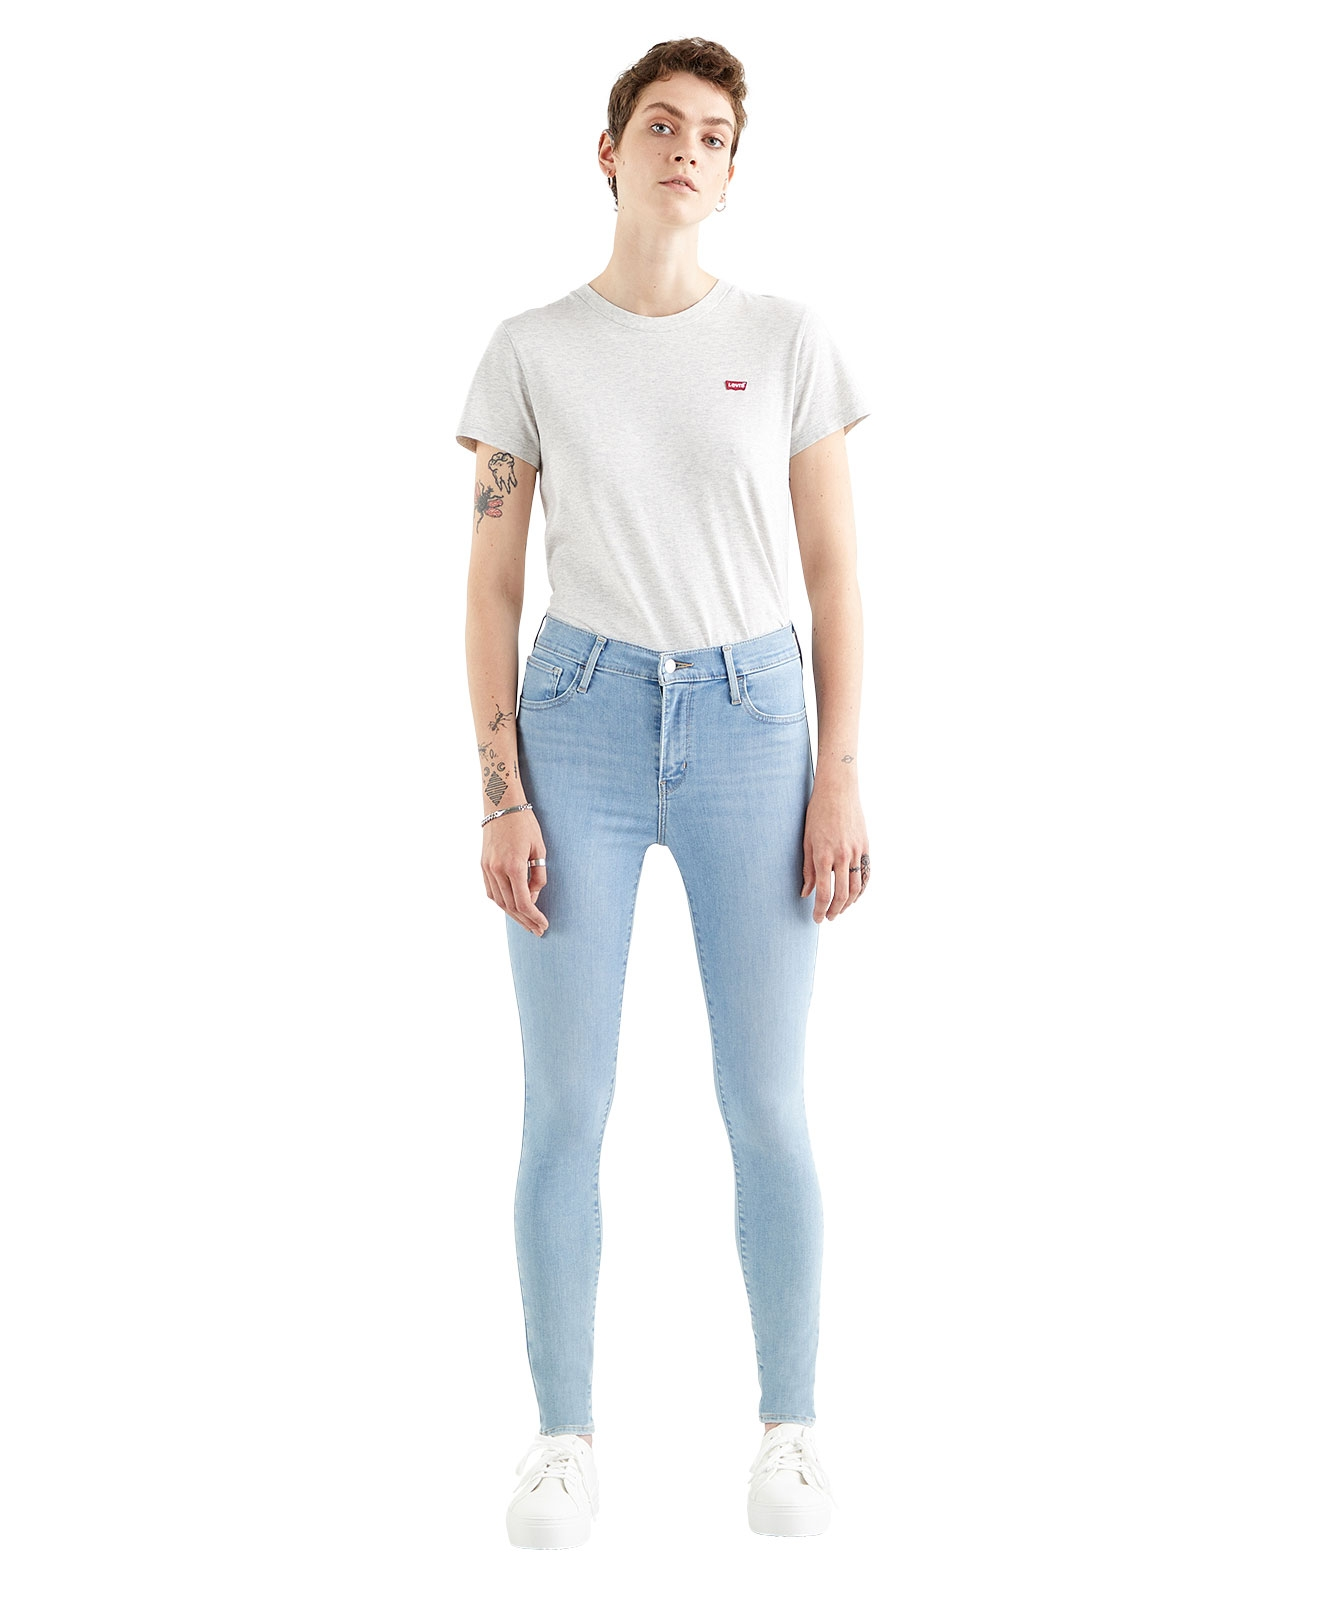 Hosen - Levis High Waisted Jeans 720 High Rise in Galaxy Piece Of Cake  - Onlineshop Jeans Meile